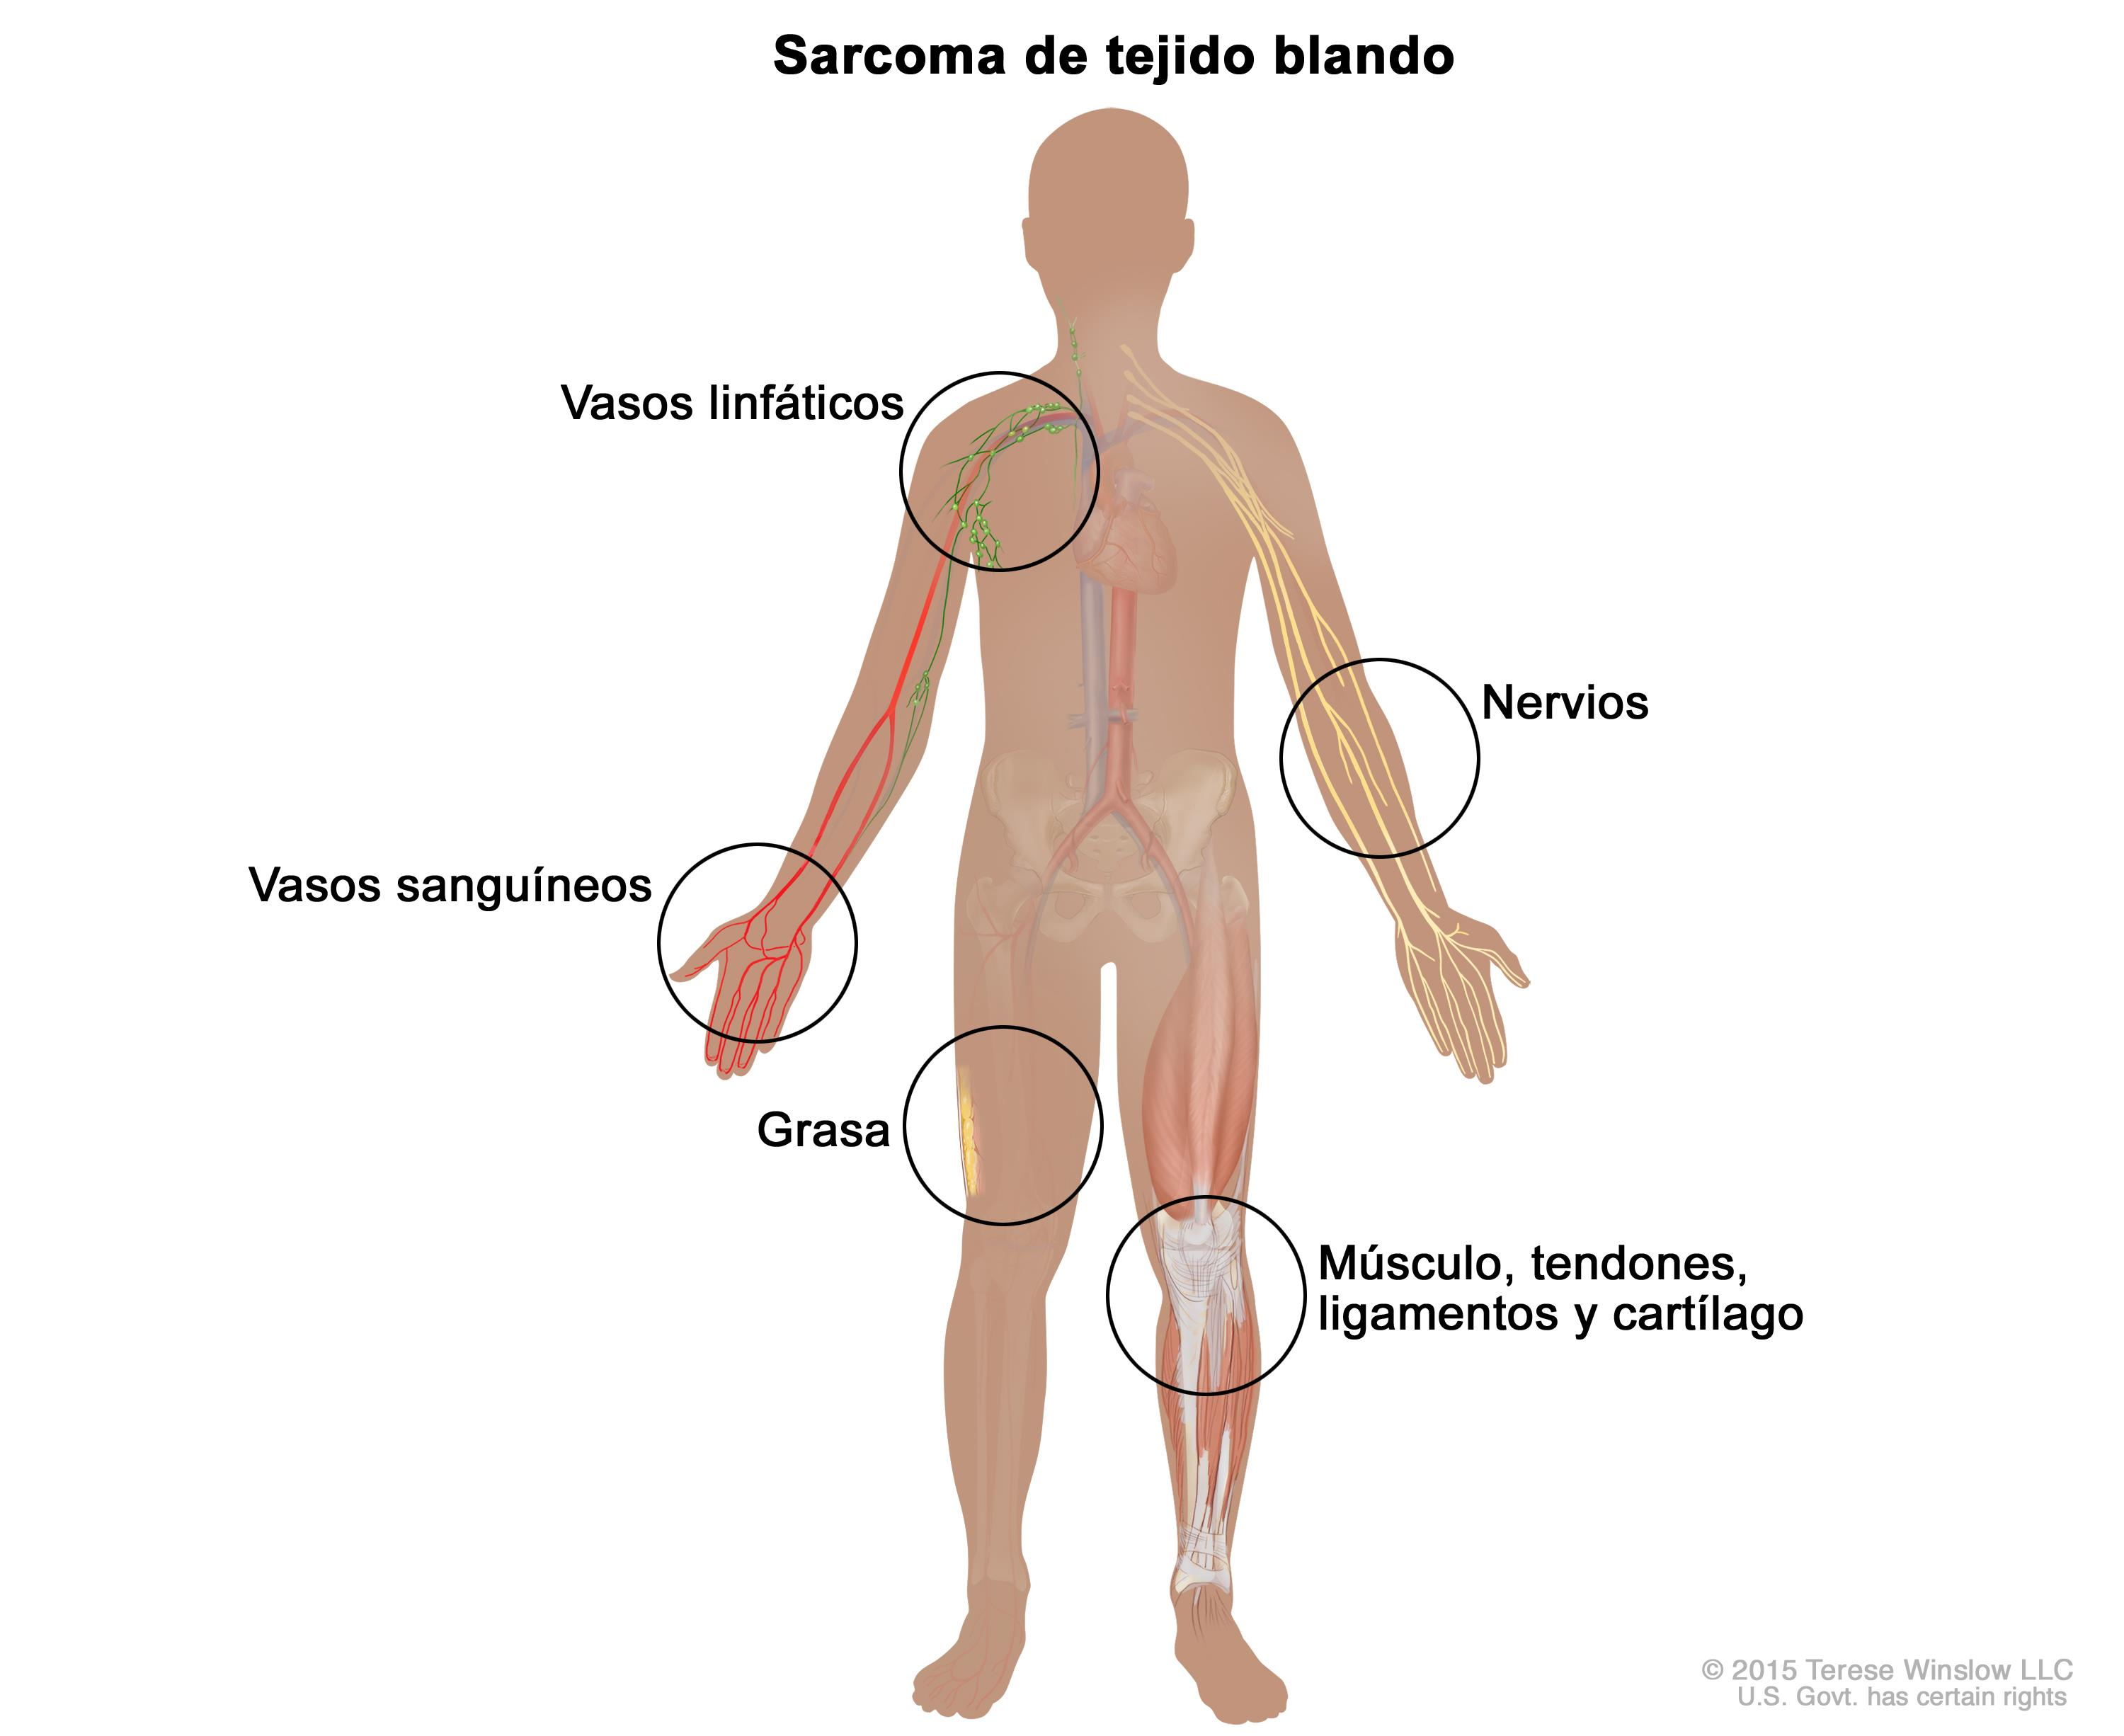 cancer sarcoma en ninos)